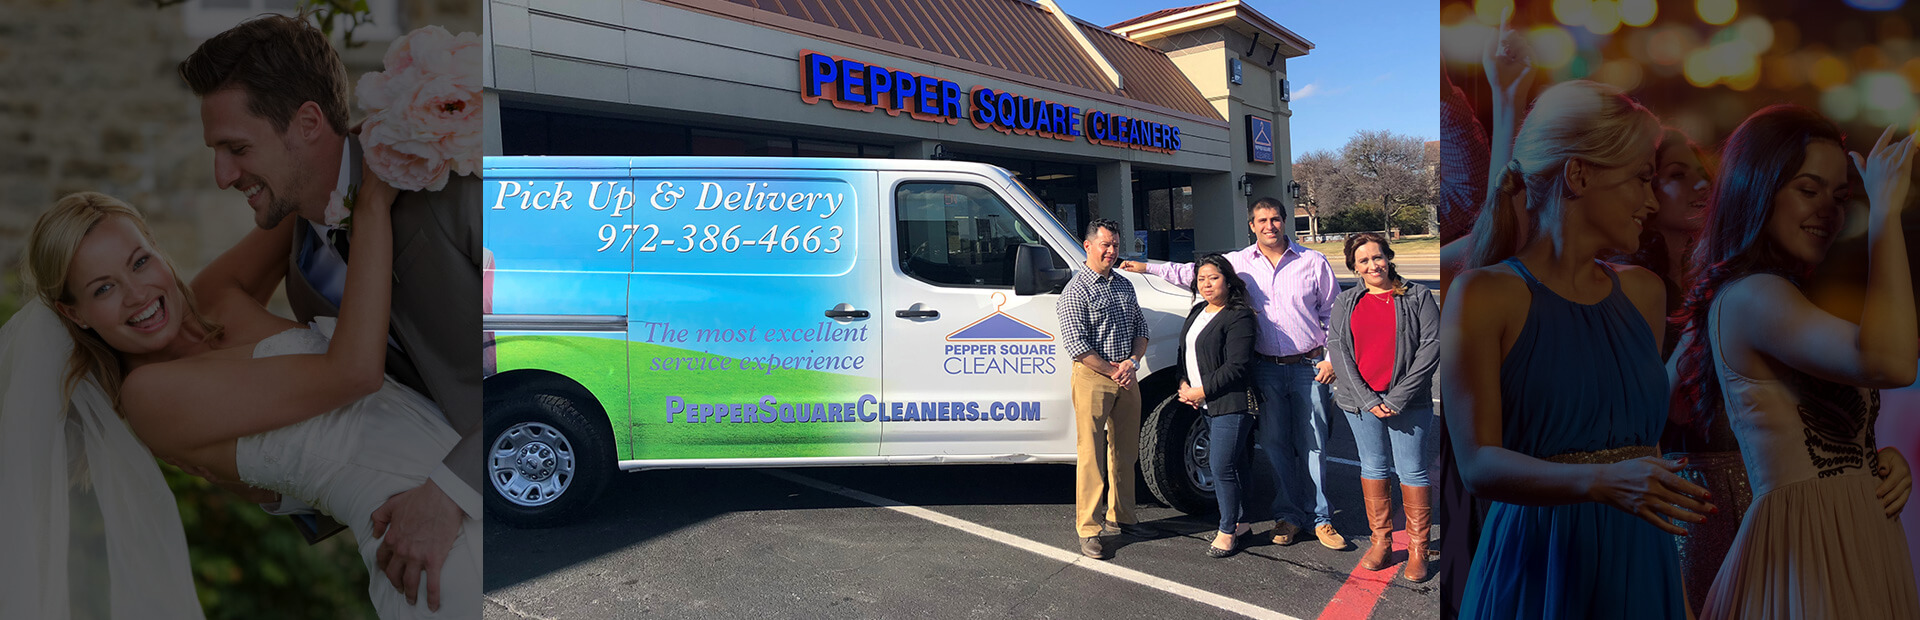 Dry Clean Pickup and Delivery - Dallas, Texas